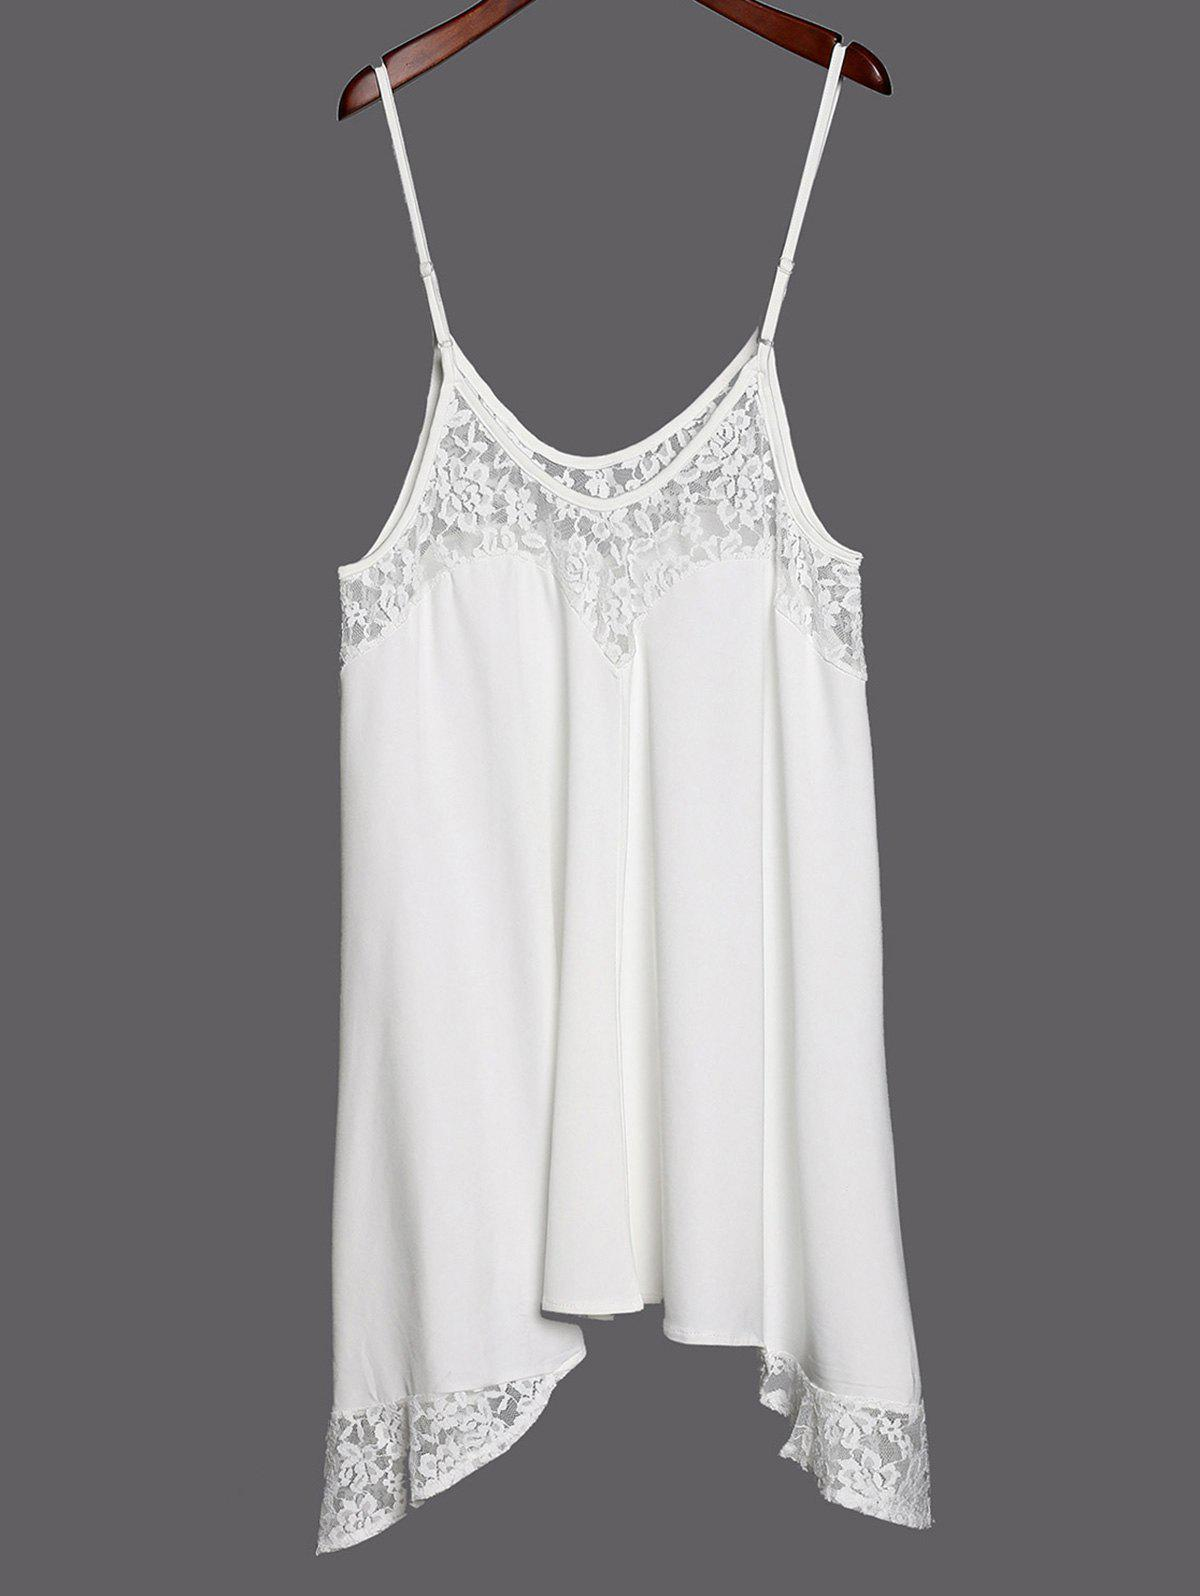 Women's Stylish Lace Splicing Solid Color Spaghetti Strap Tank Top